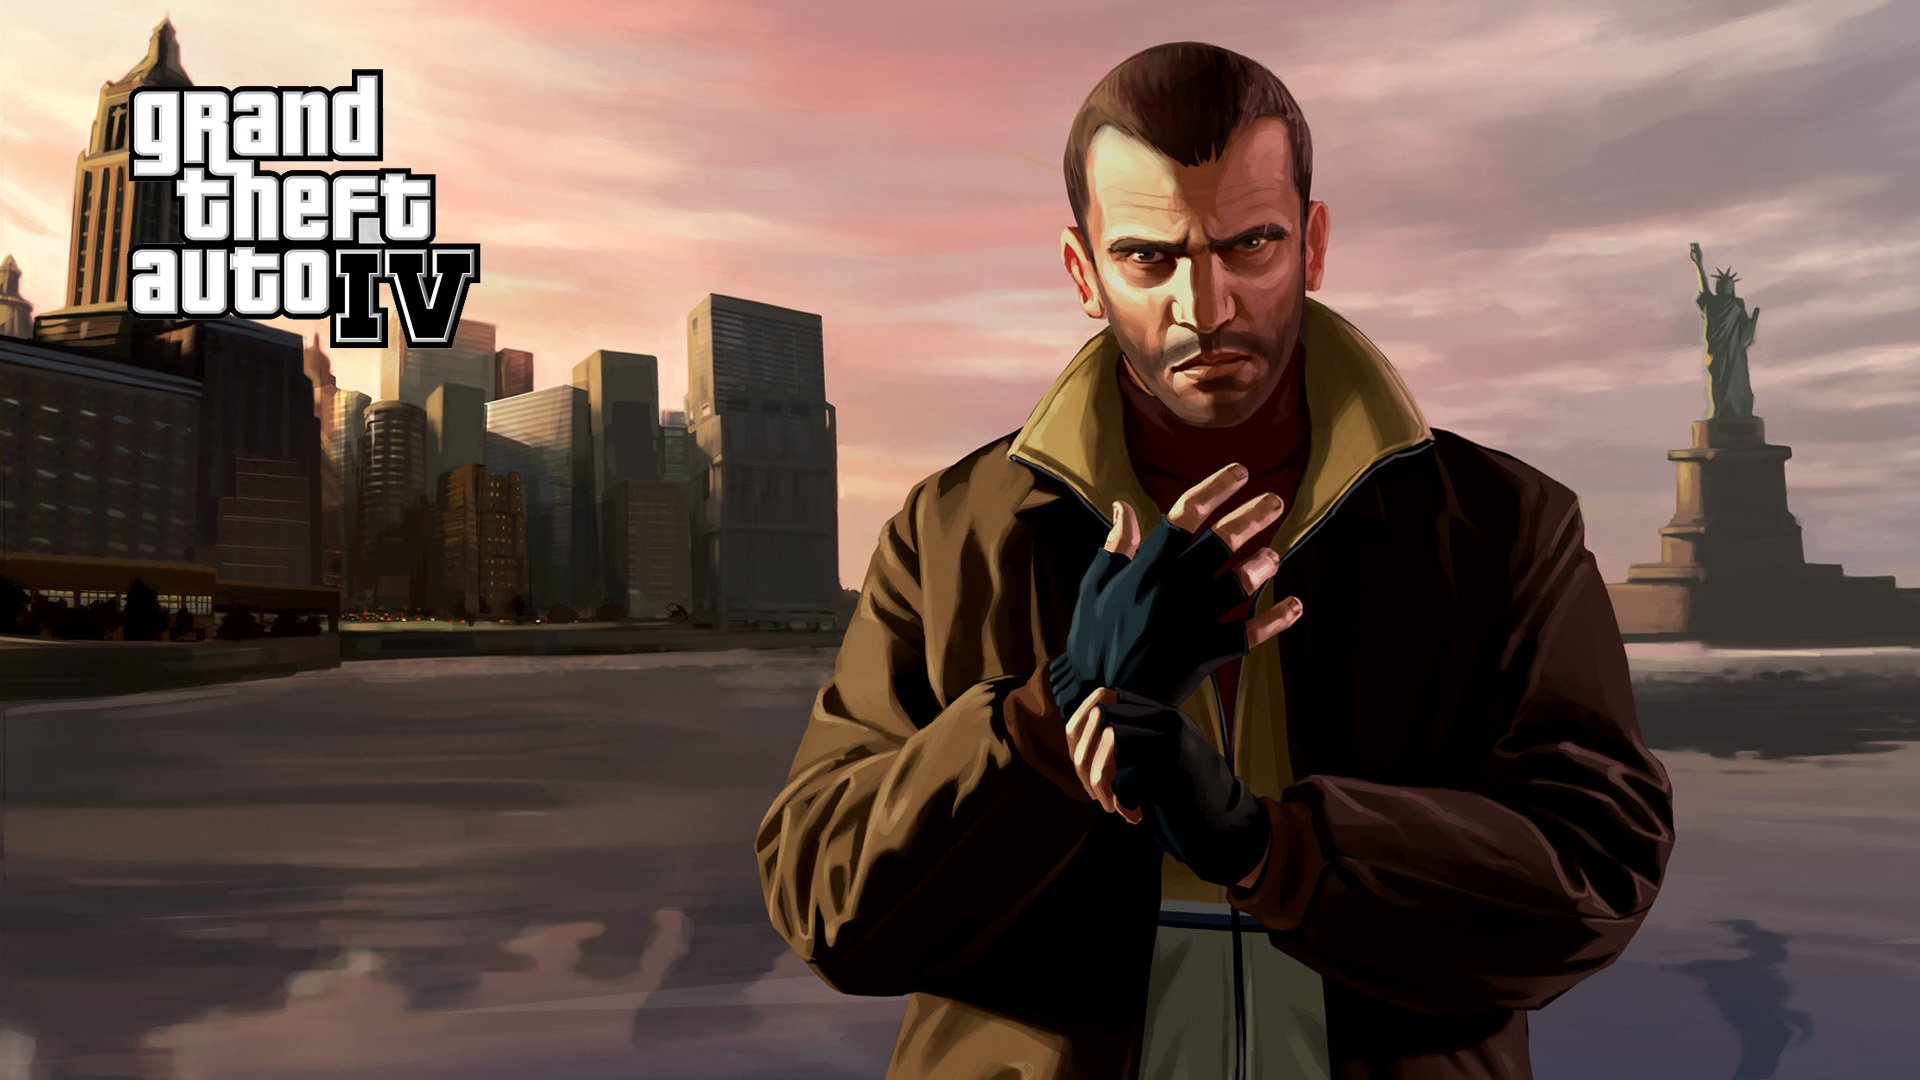 Hd Wallpaper Background Image Id X Video Game Grand Theft Auto Iv